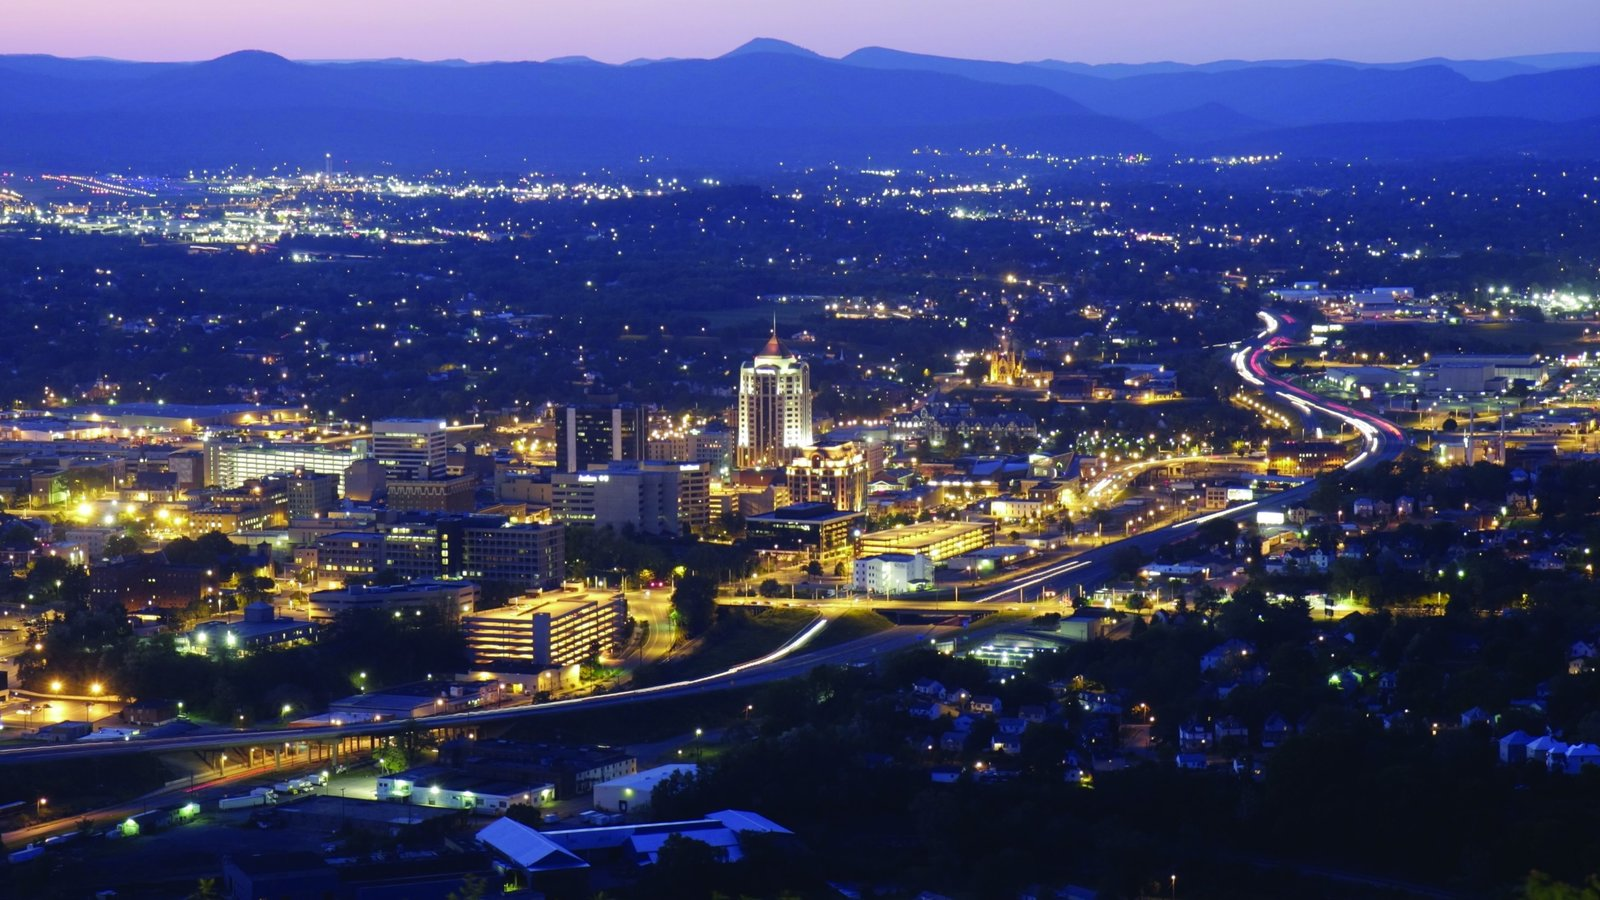 Roanoke which includes skyline, a city and landscape views